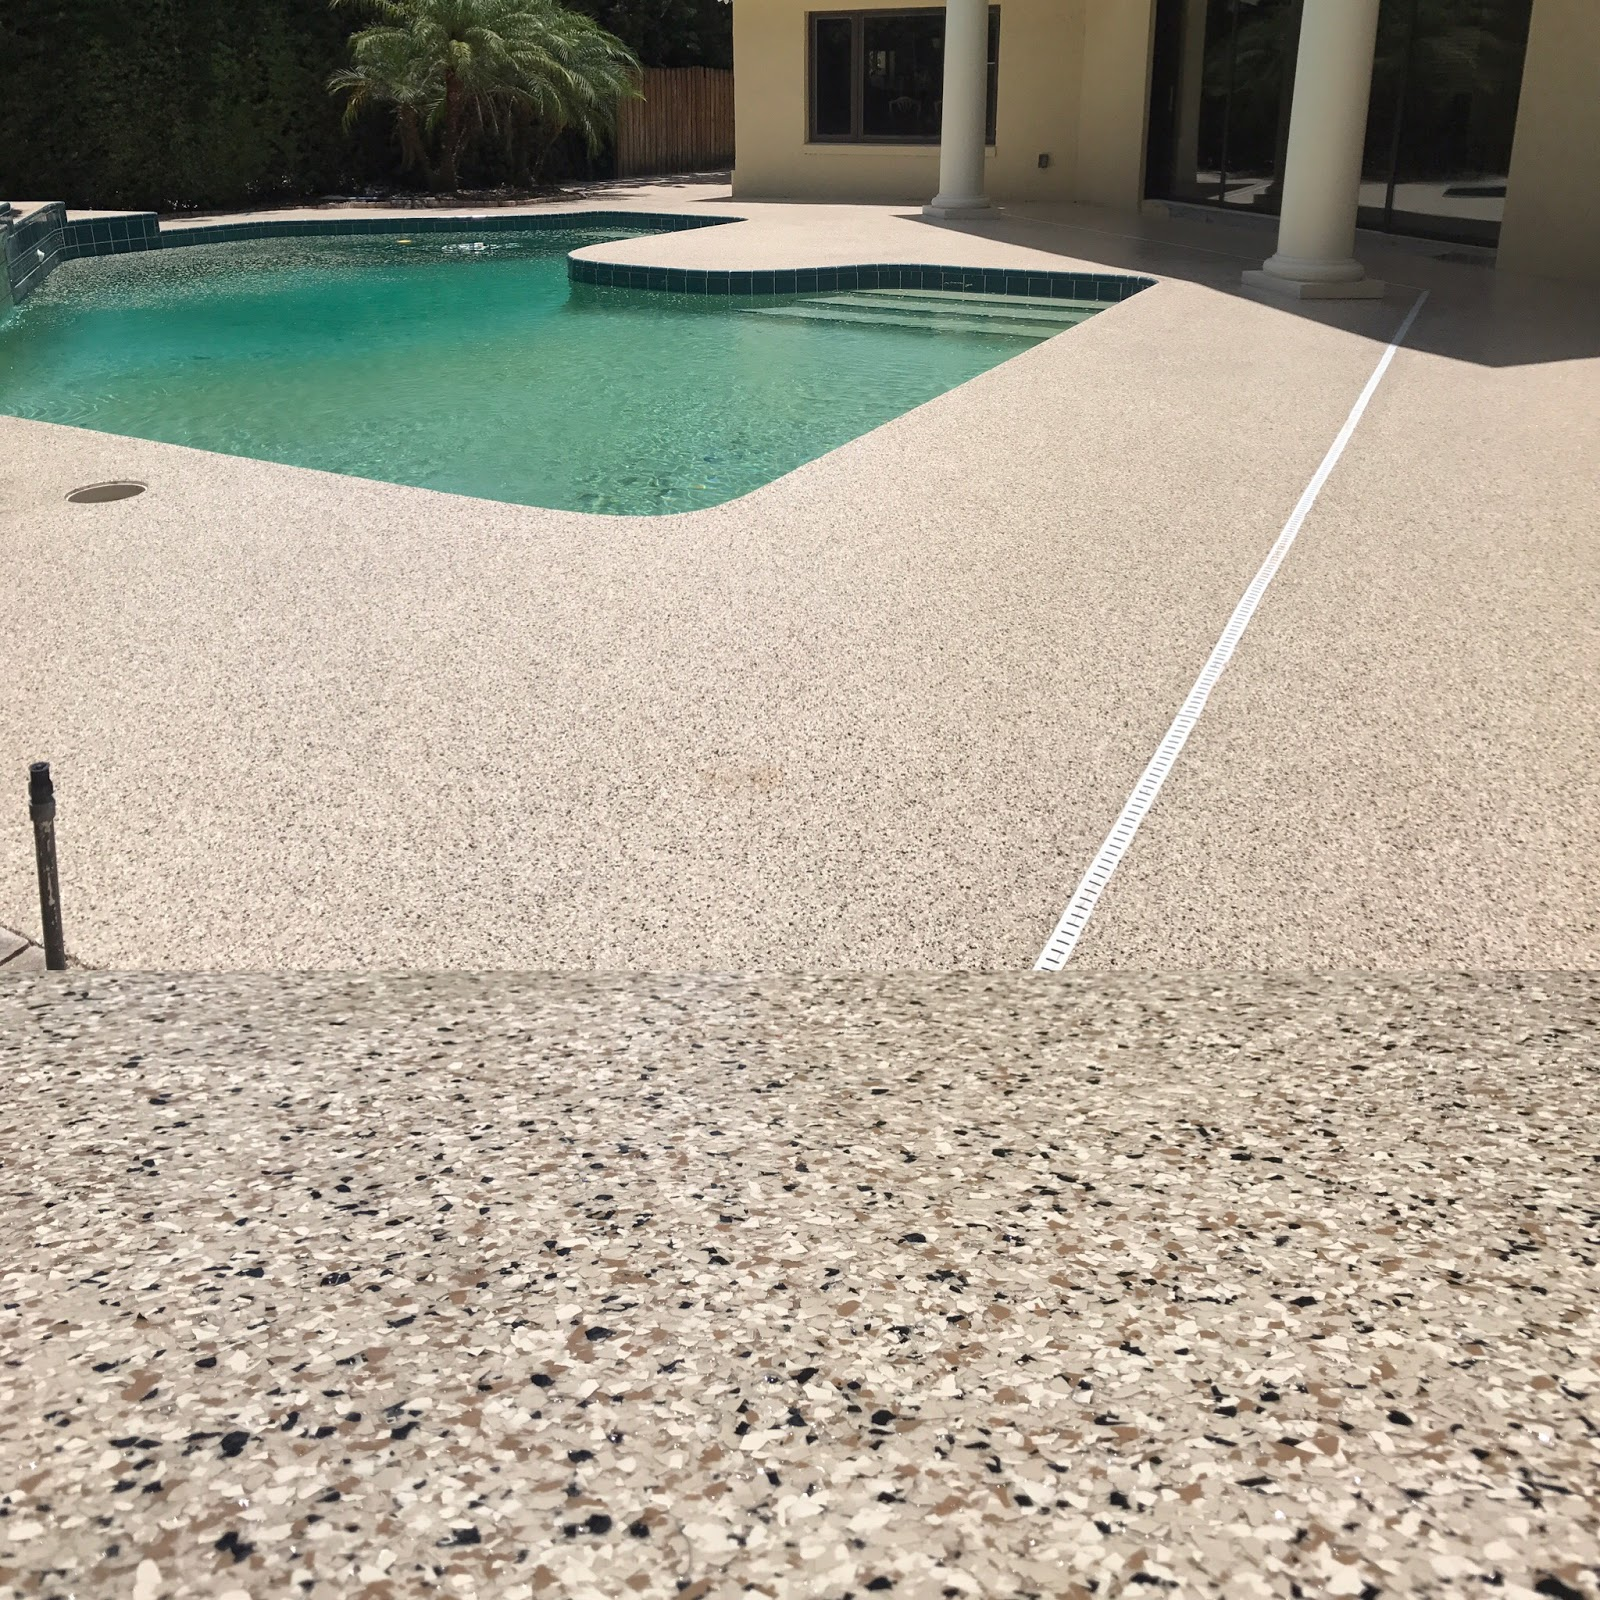 Epoxy Flooring For Patio: Legacy Industrial's Blog Site: Outdoor Epoxy Urethane